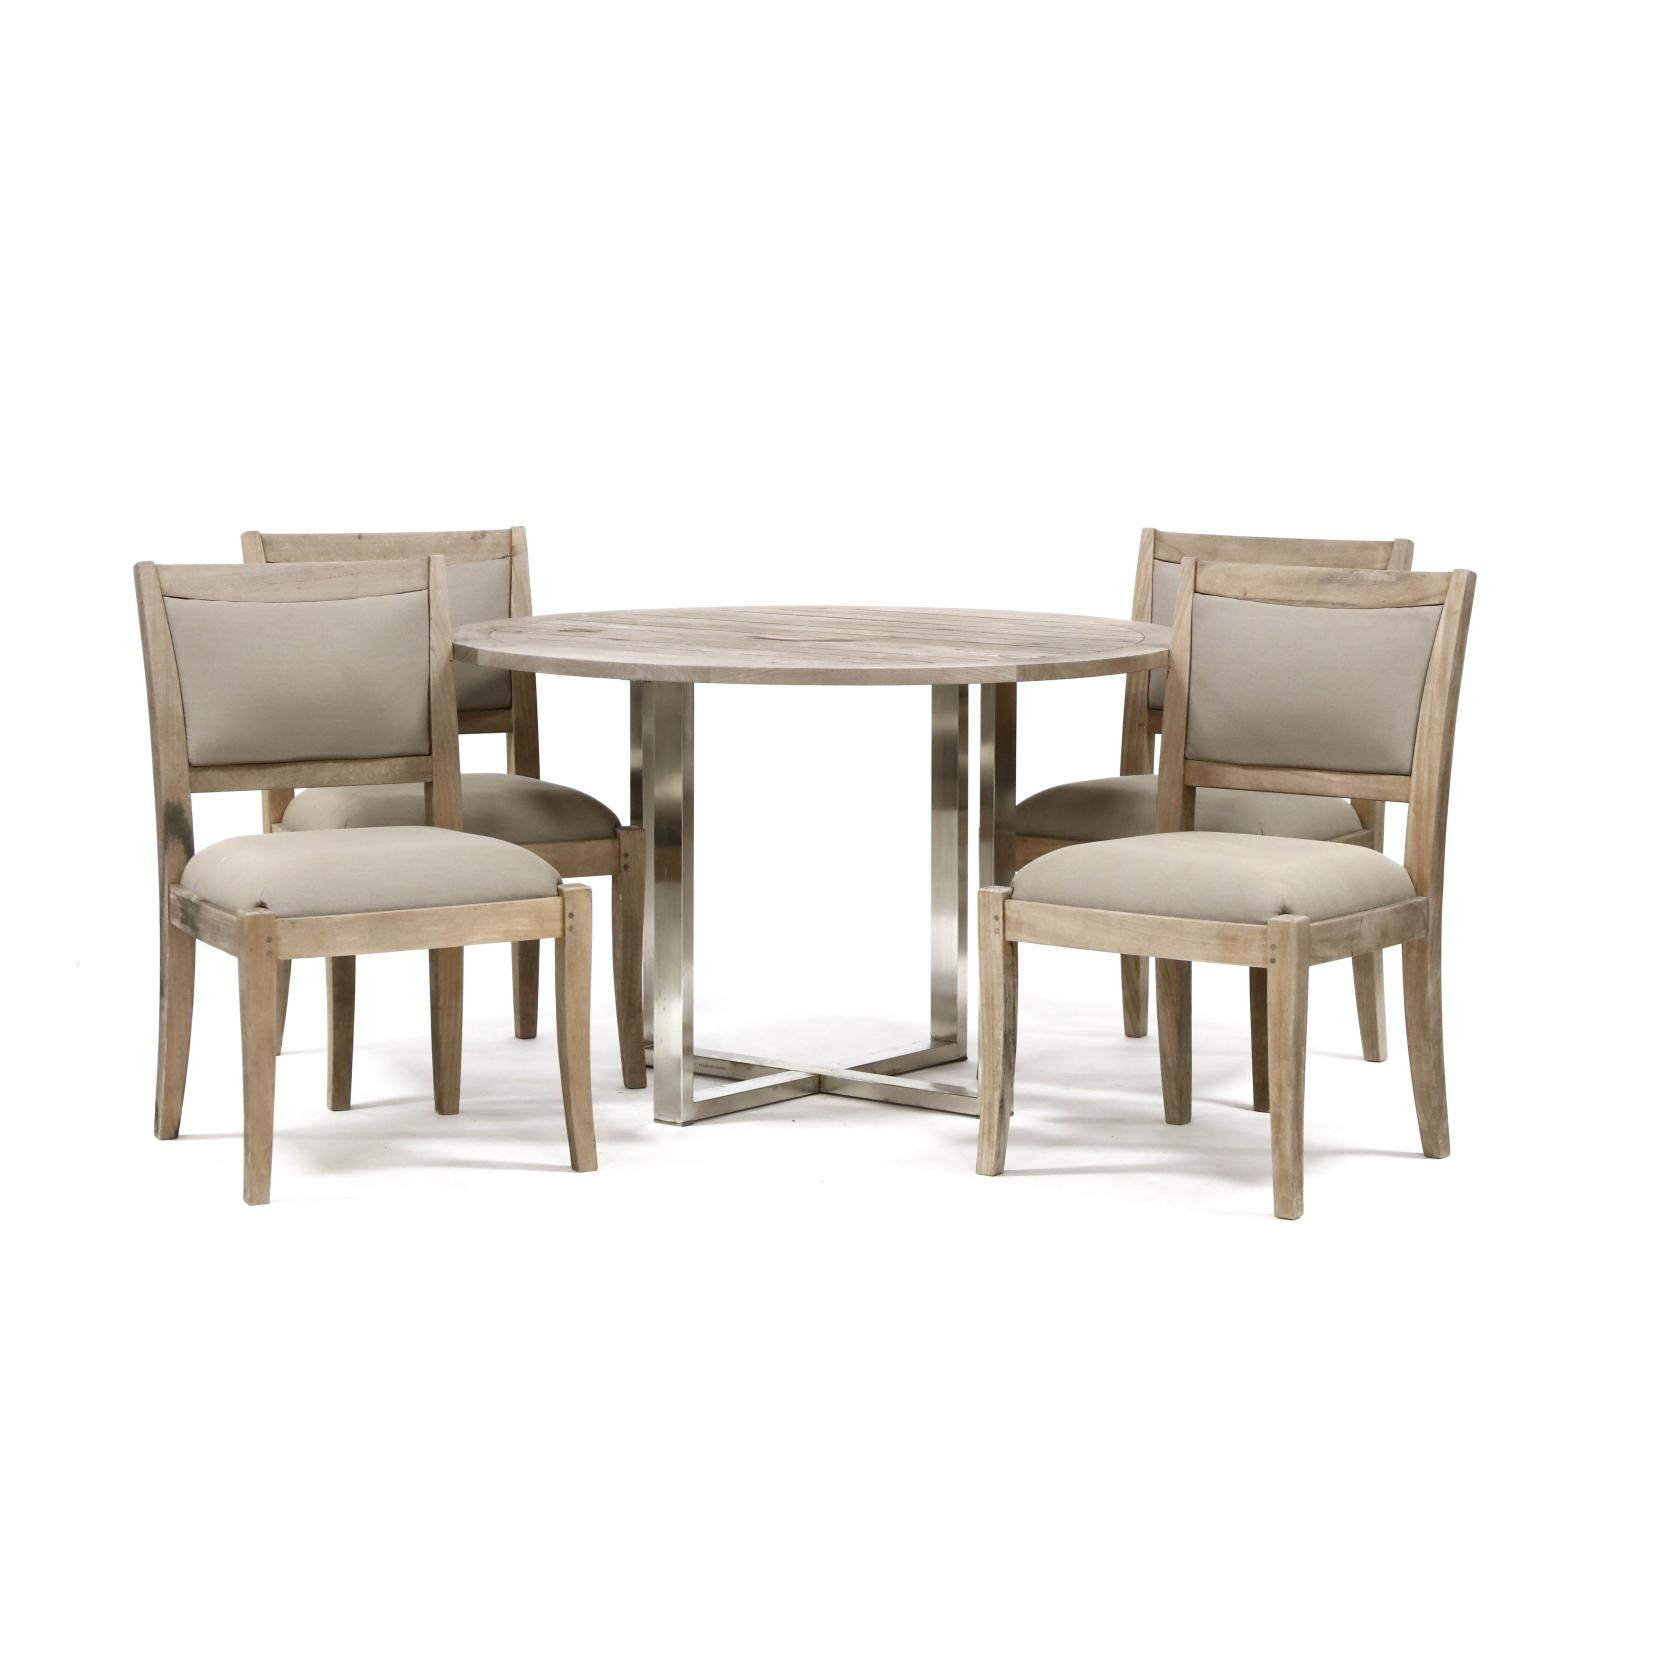 kingsley-bate-teak-table-and-four-chairs